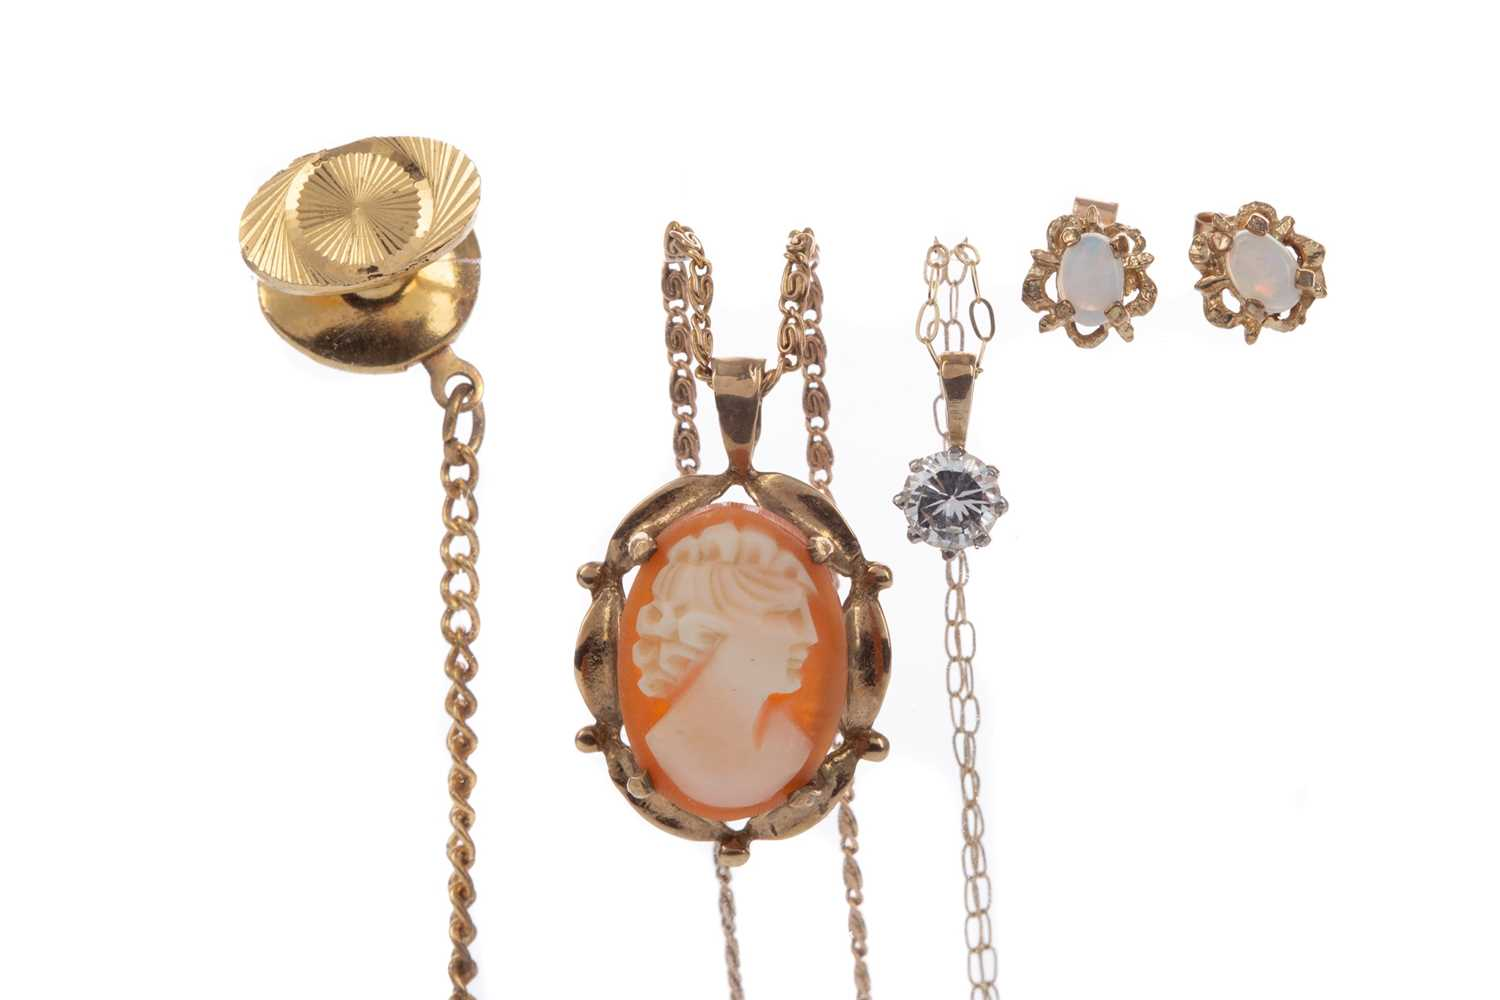 Lot 1352 - A TIE PIN, PAIR OF EARRINGS AND TWO PENDANTS